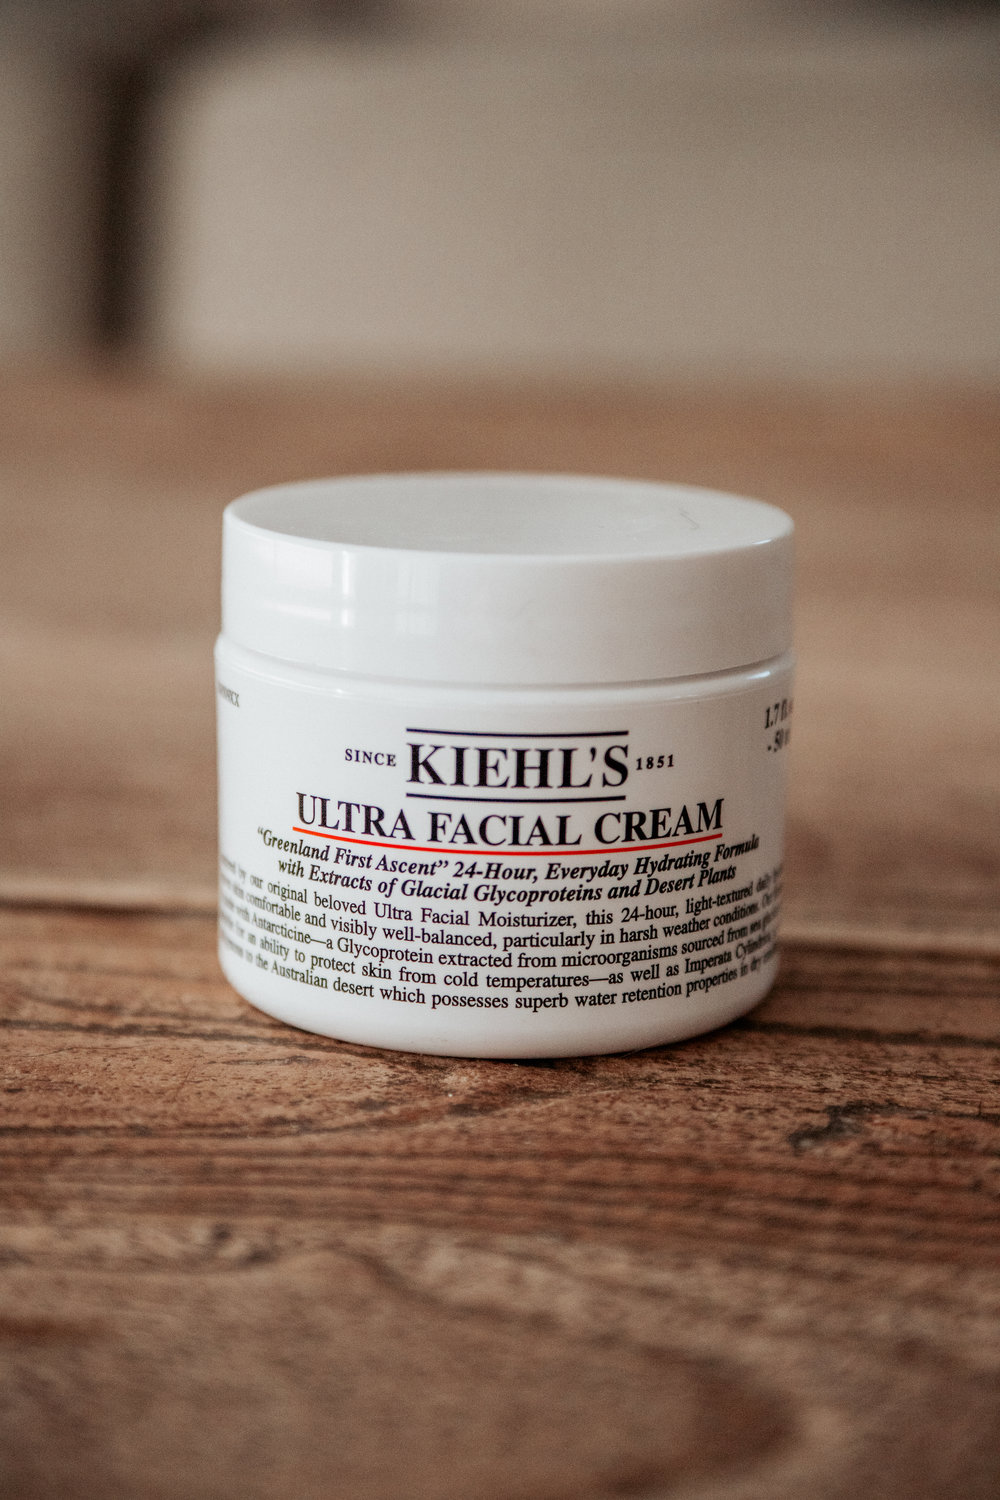 Kiehls-Ultra-Facial-Cream-Ashlee-Rose-Photography